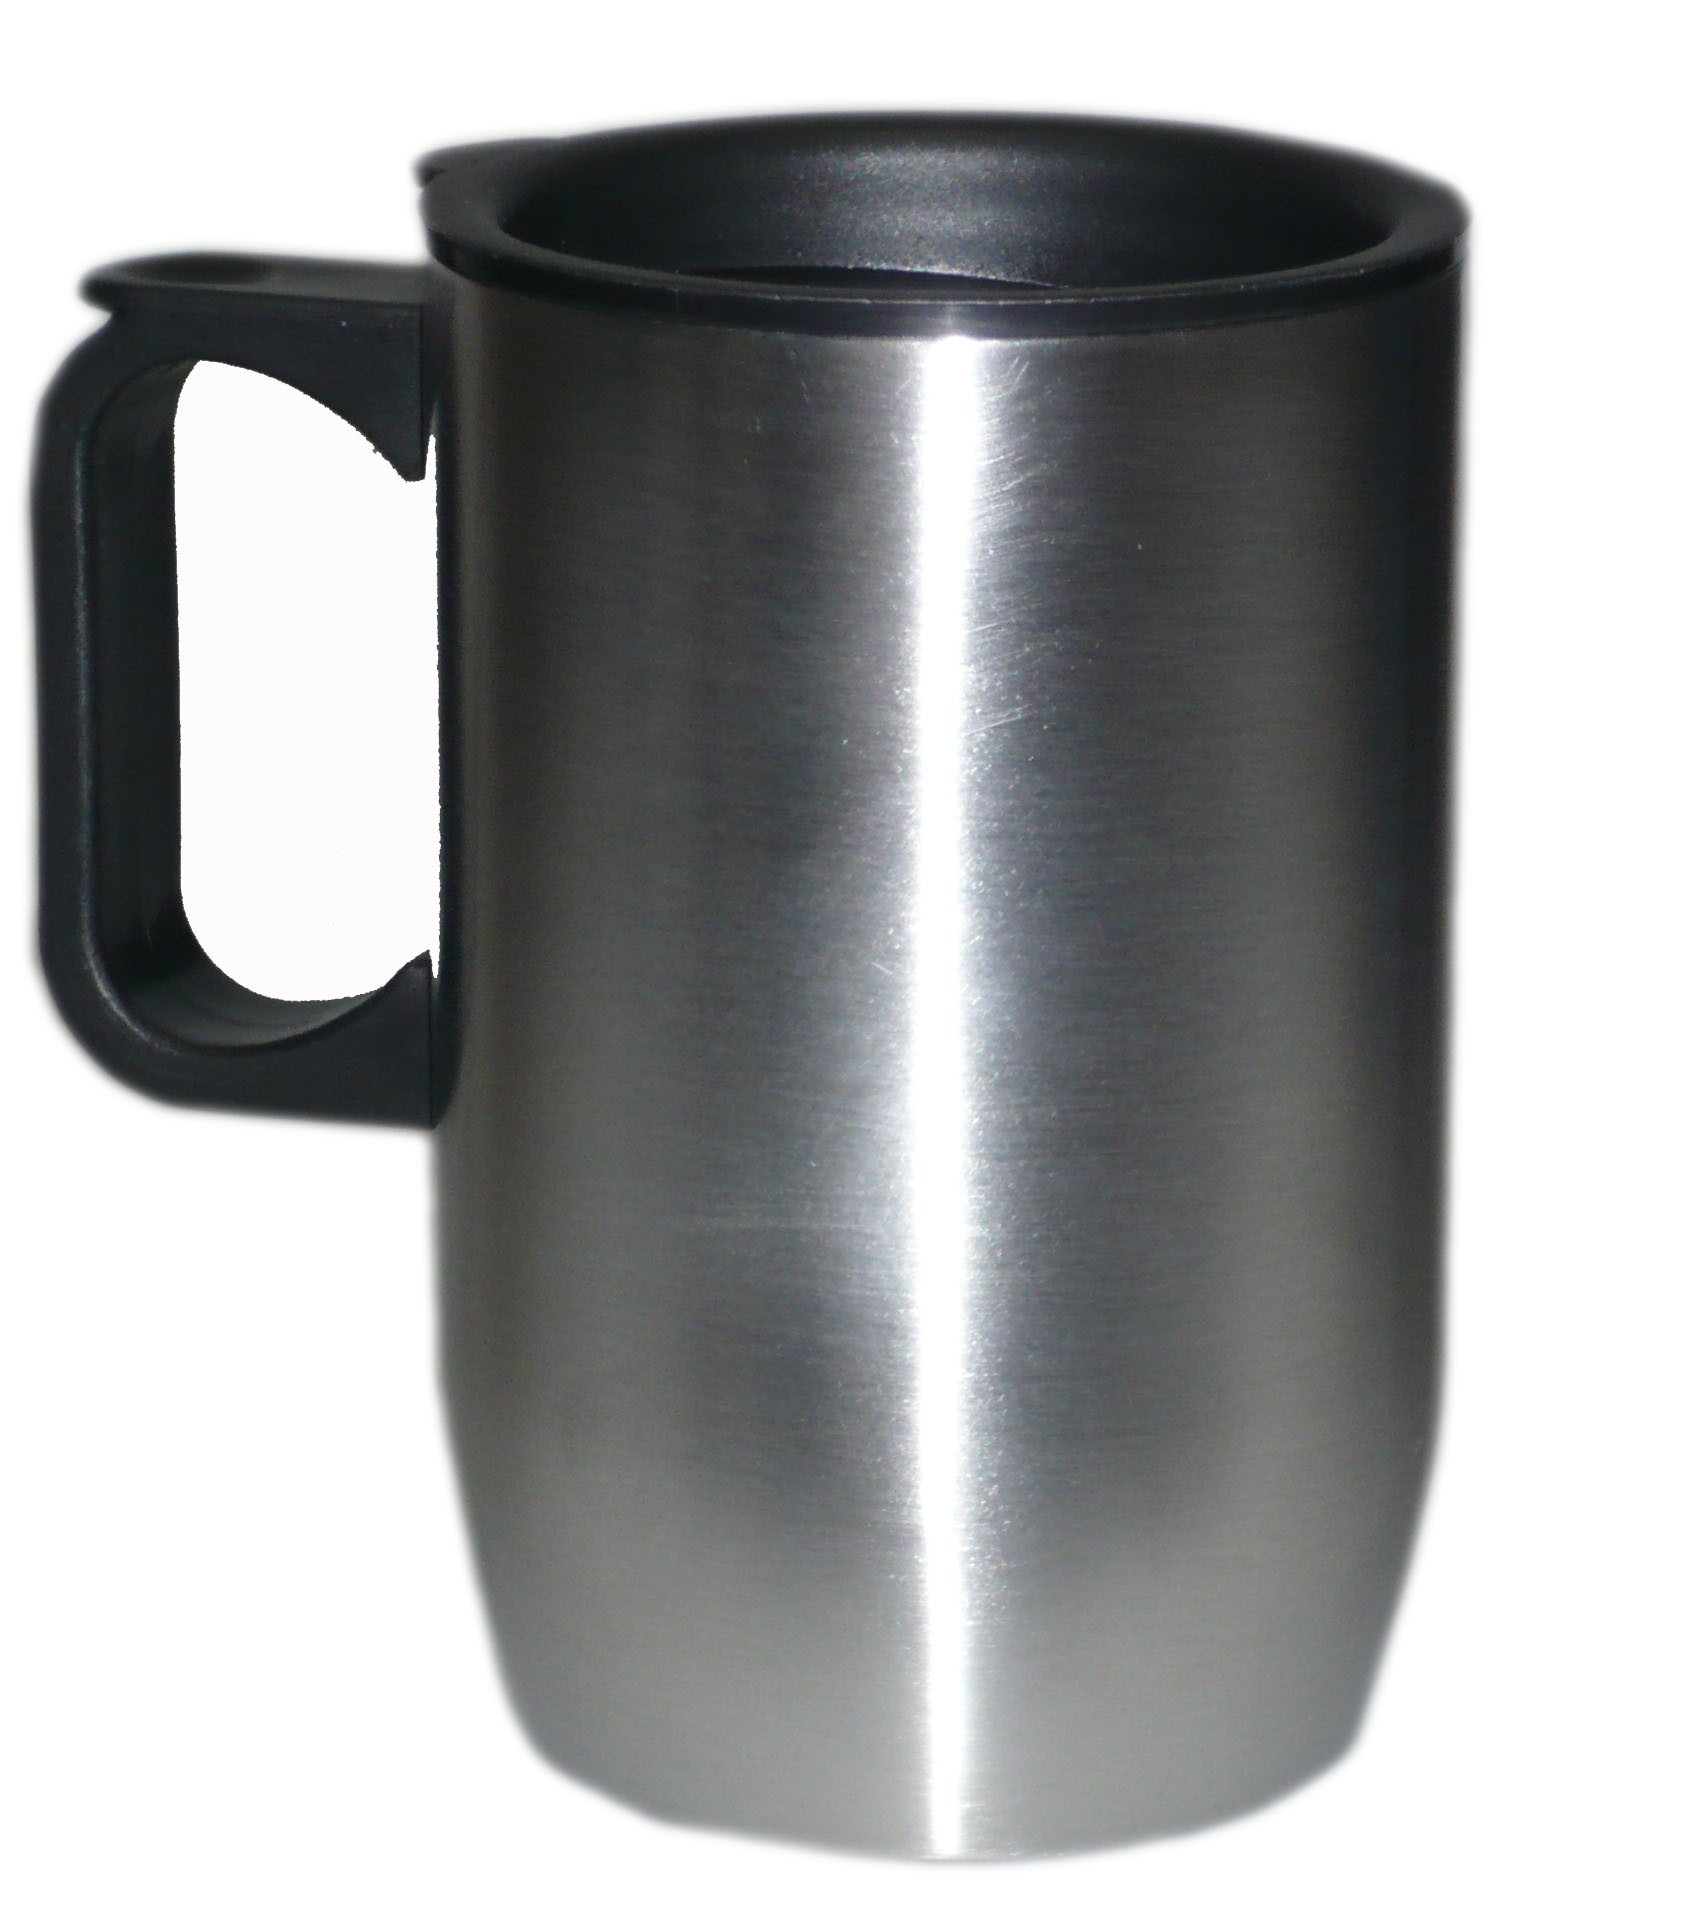 GCP0001 Stainless Steel Desk Mug, 400ml